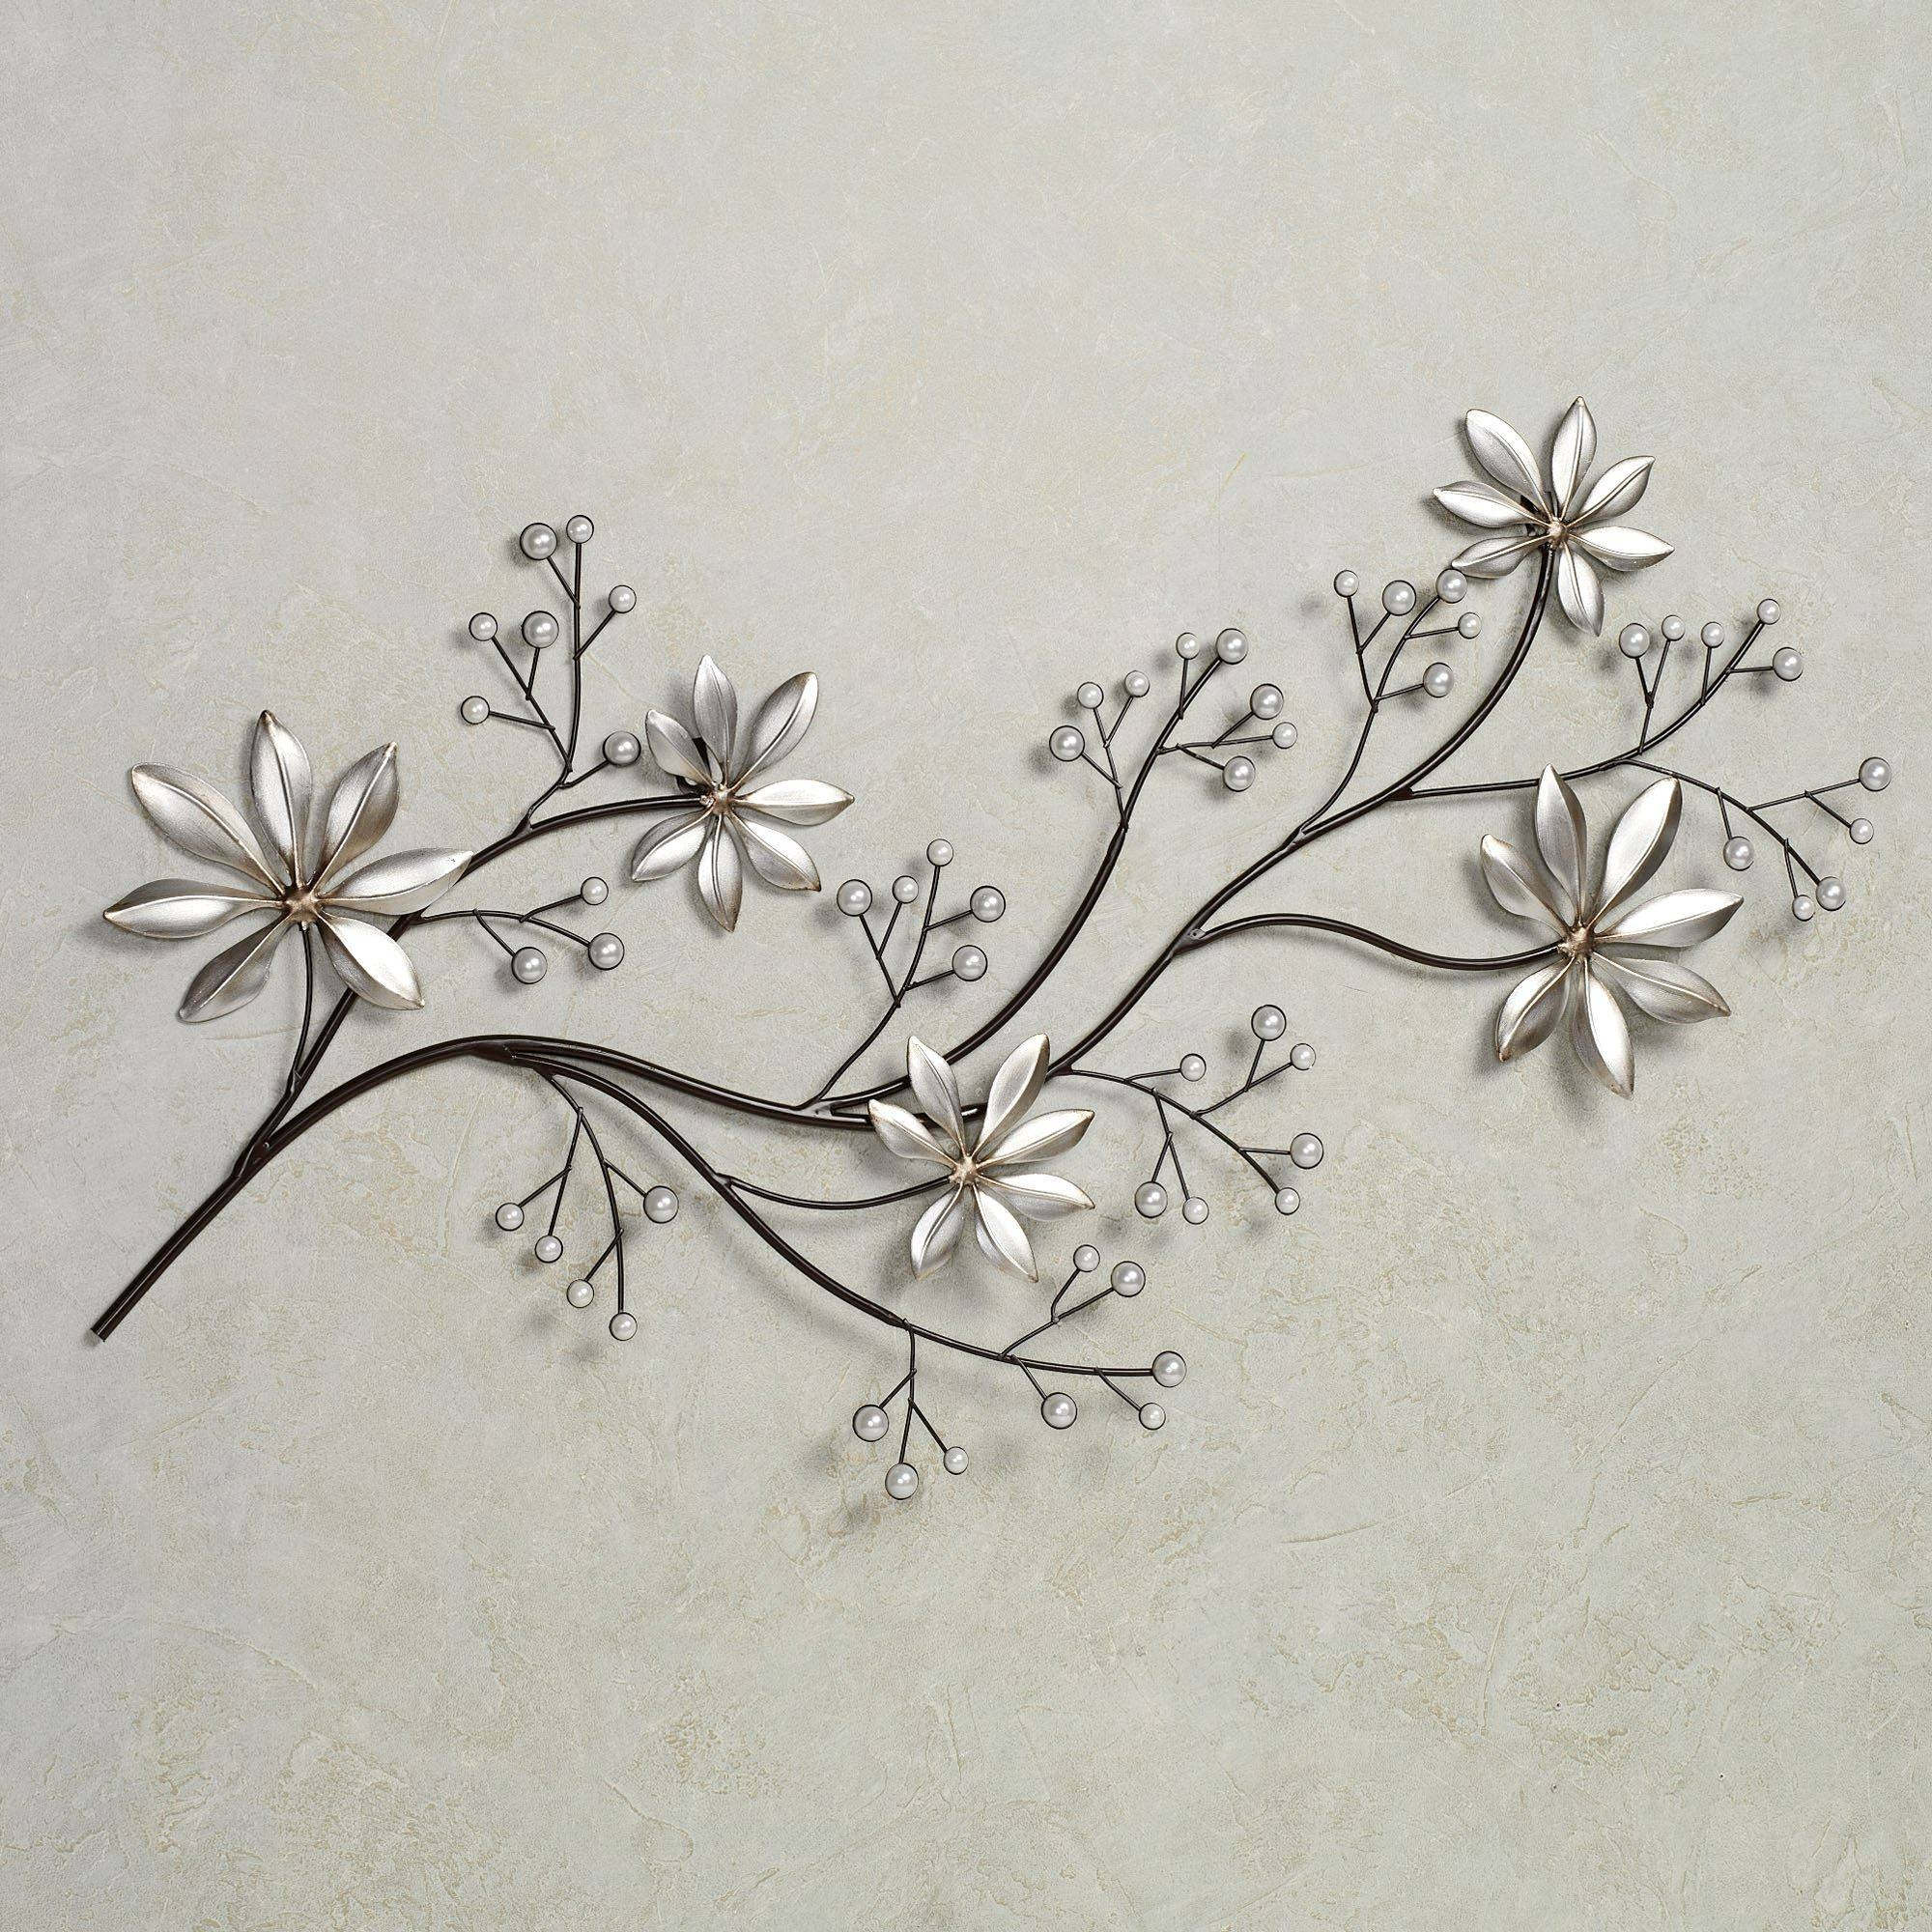 Pearl Array Floral Metal Wall Art Pertaining To Newest Branches Metal Wall Art (Gallery 5 of 20)